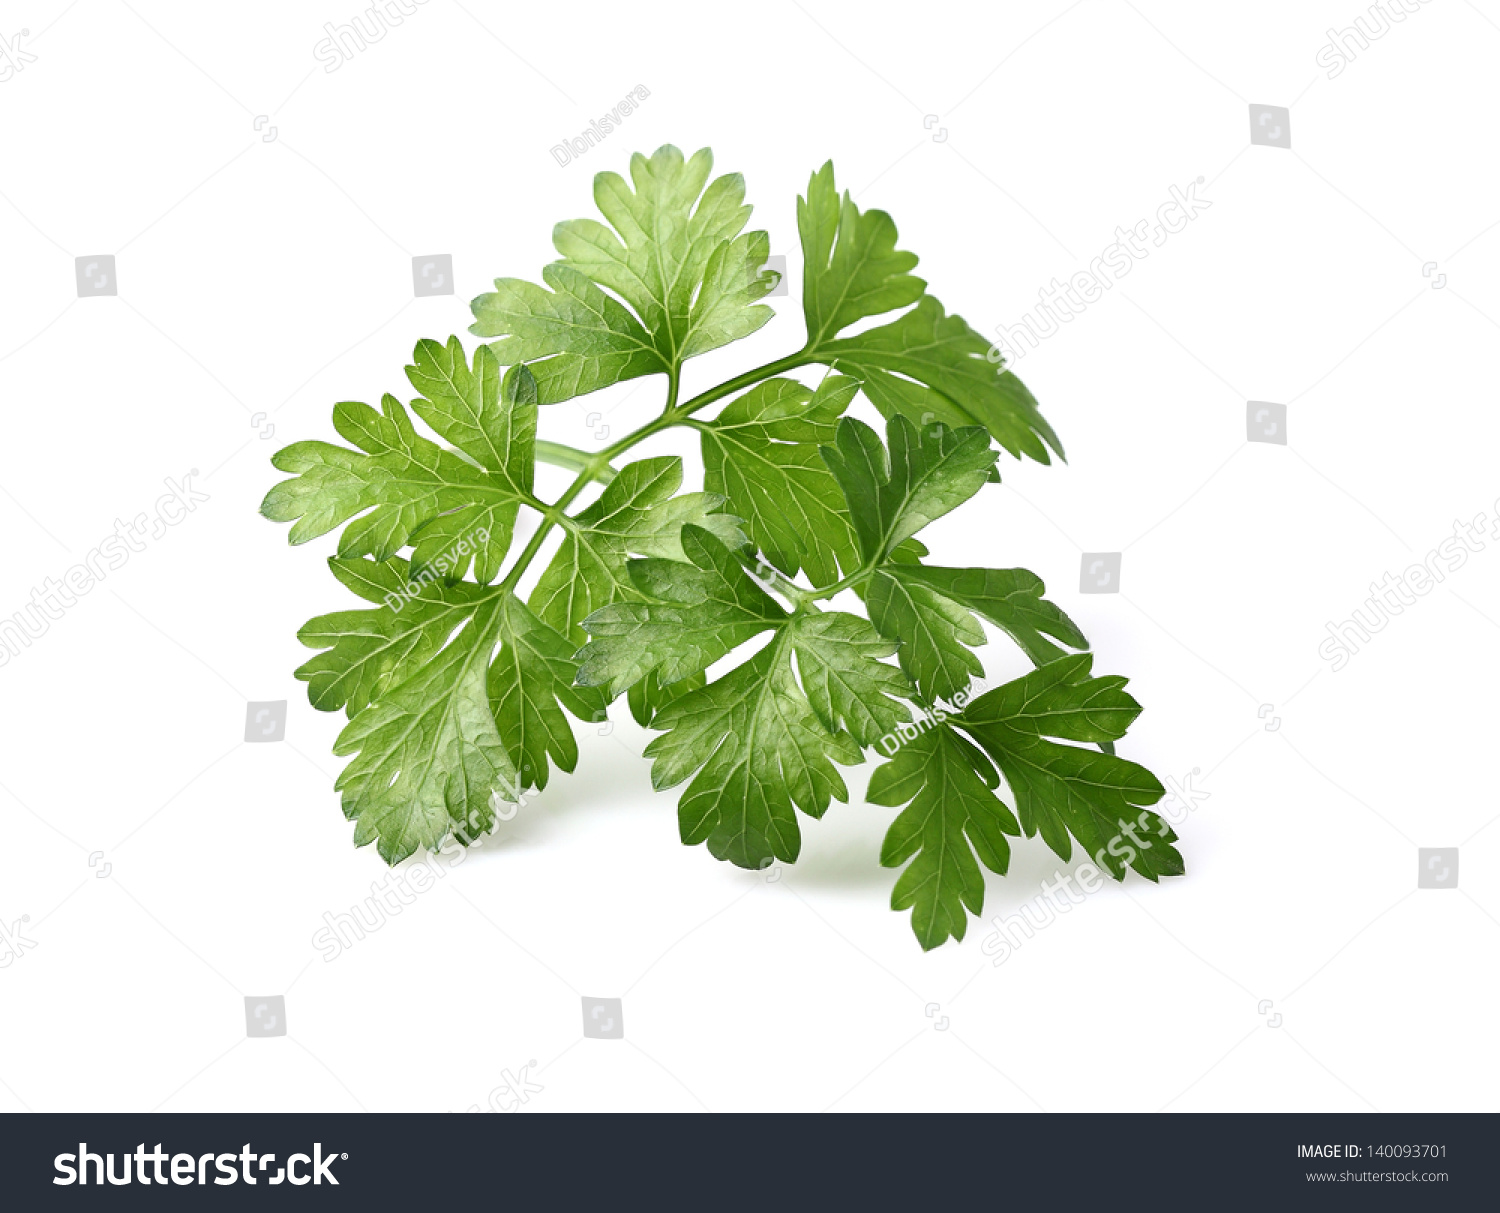 how to get high of parsley